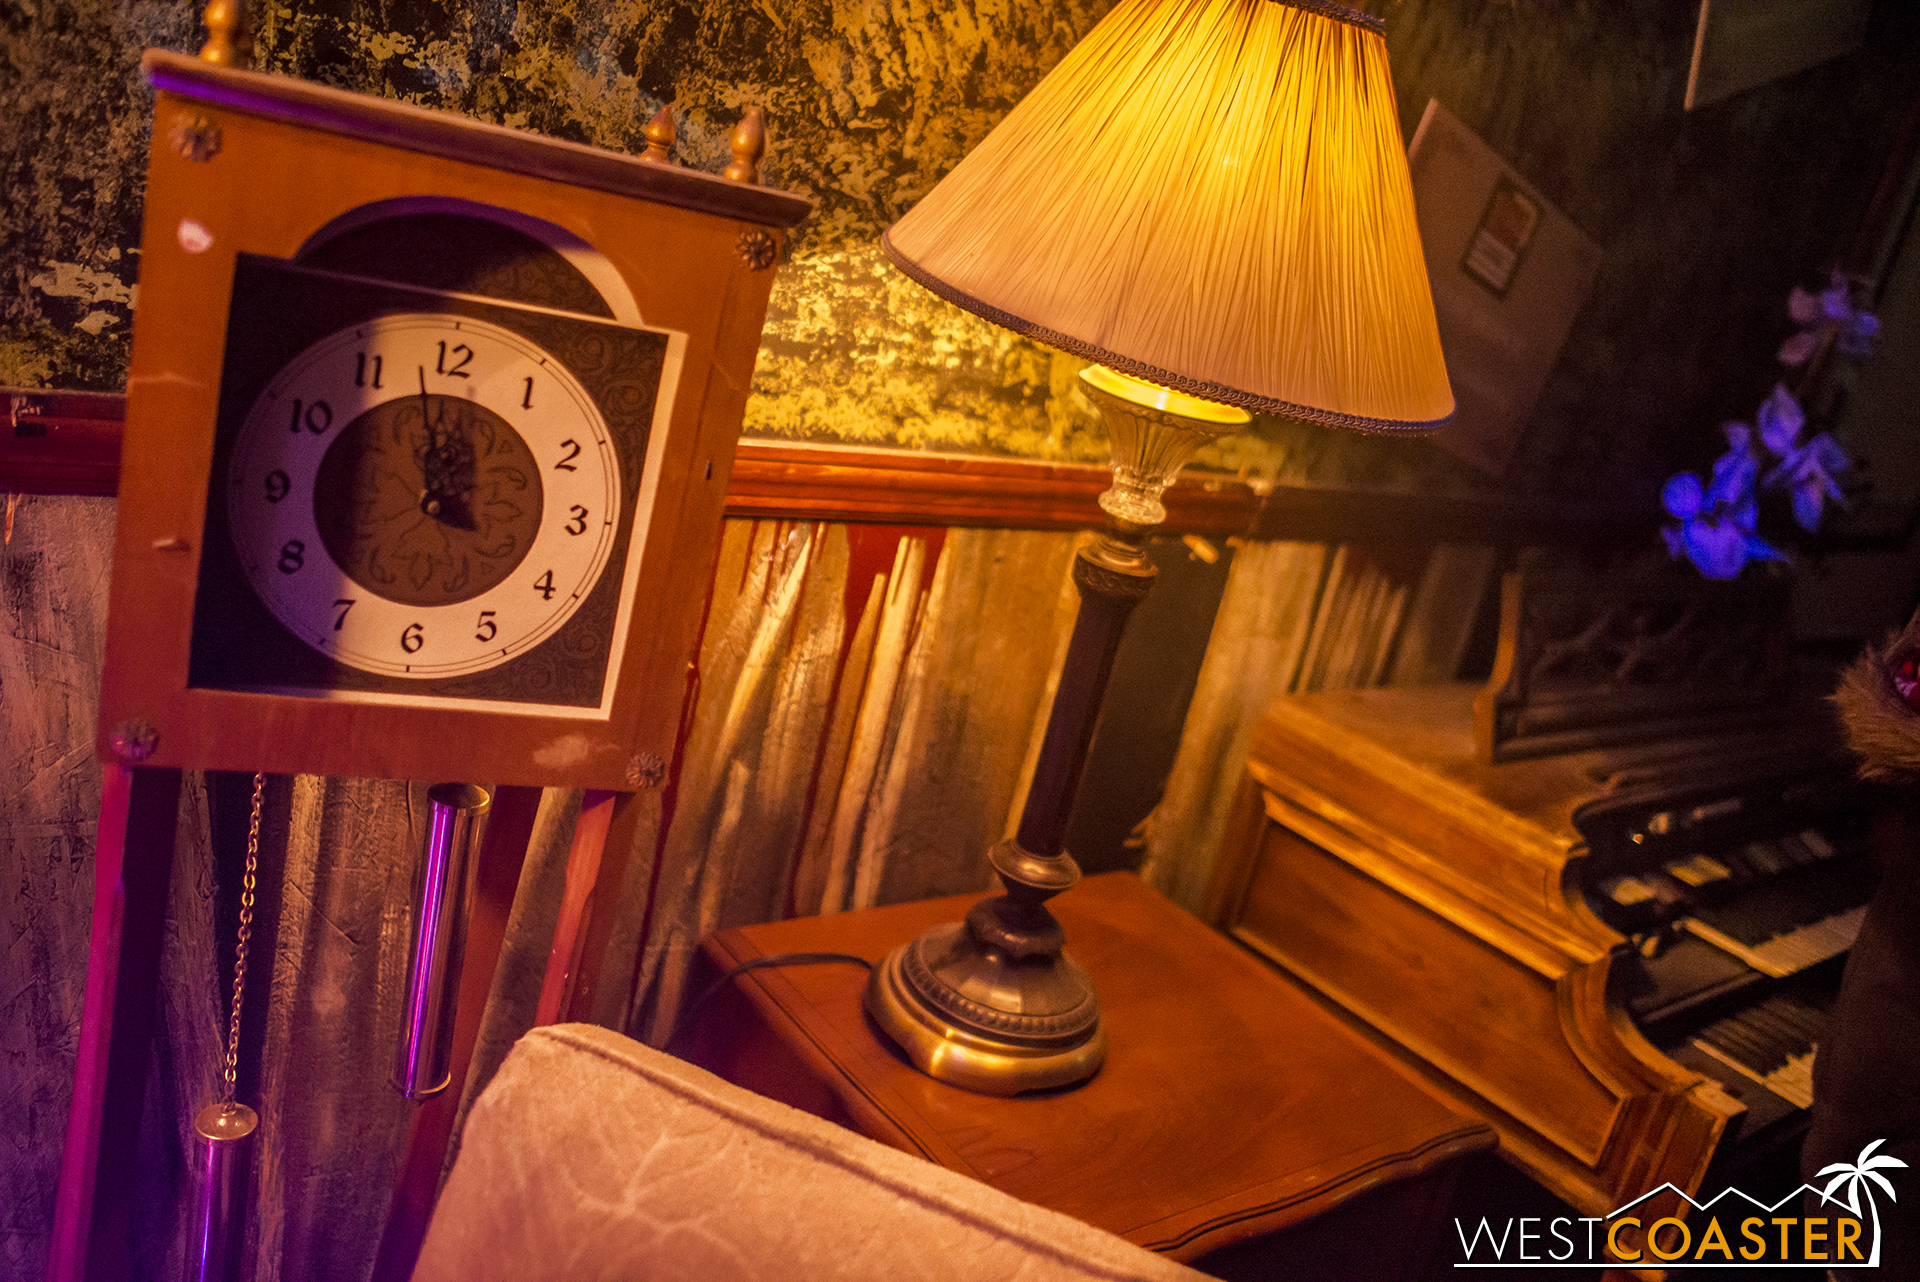 ...a lamp and old clock there.